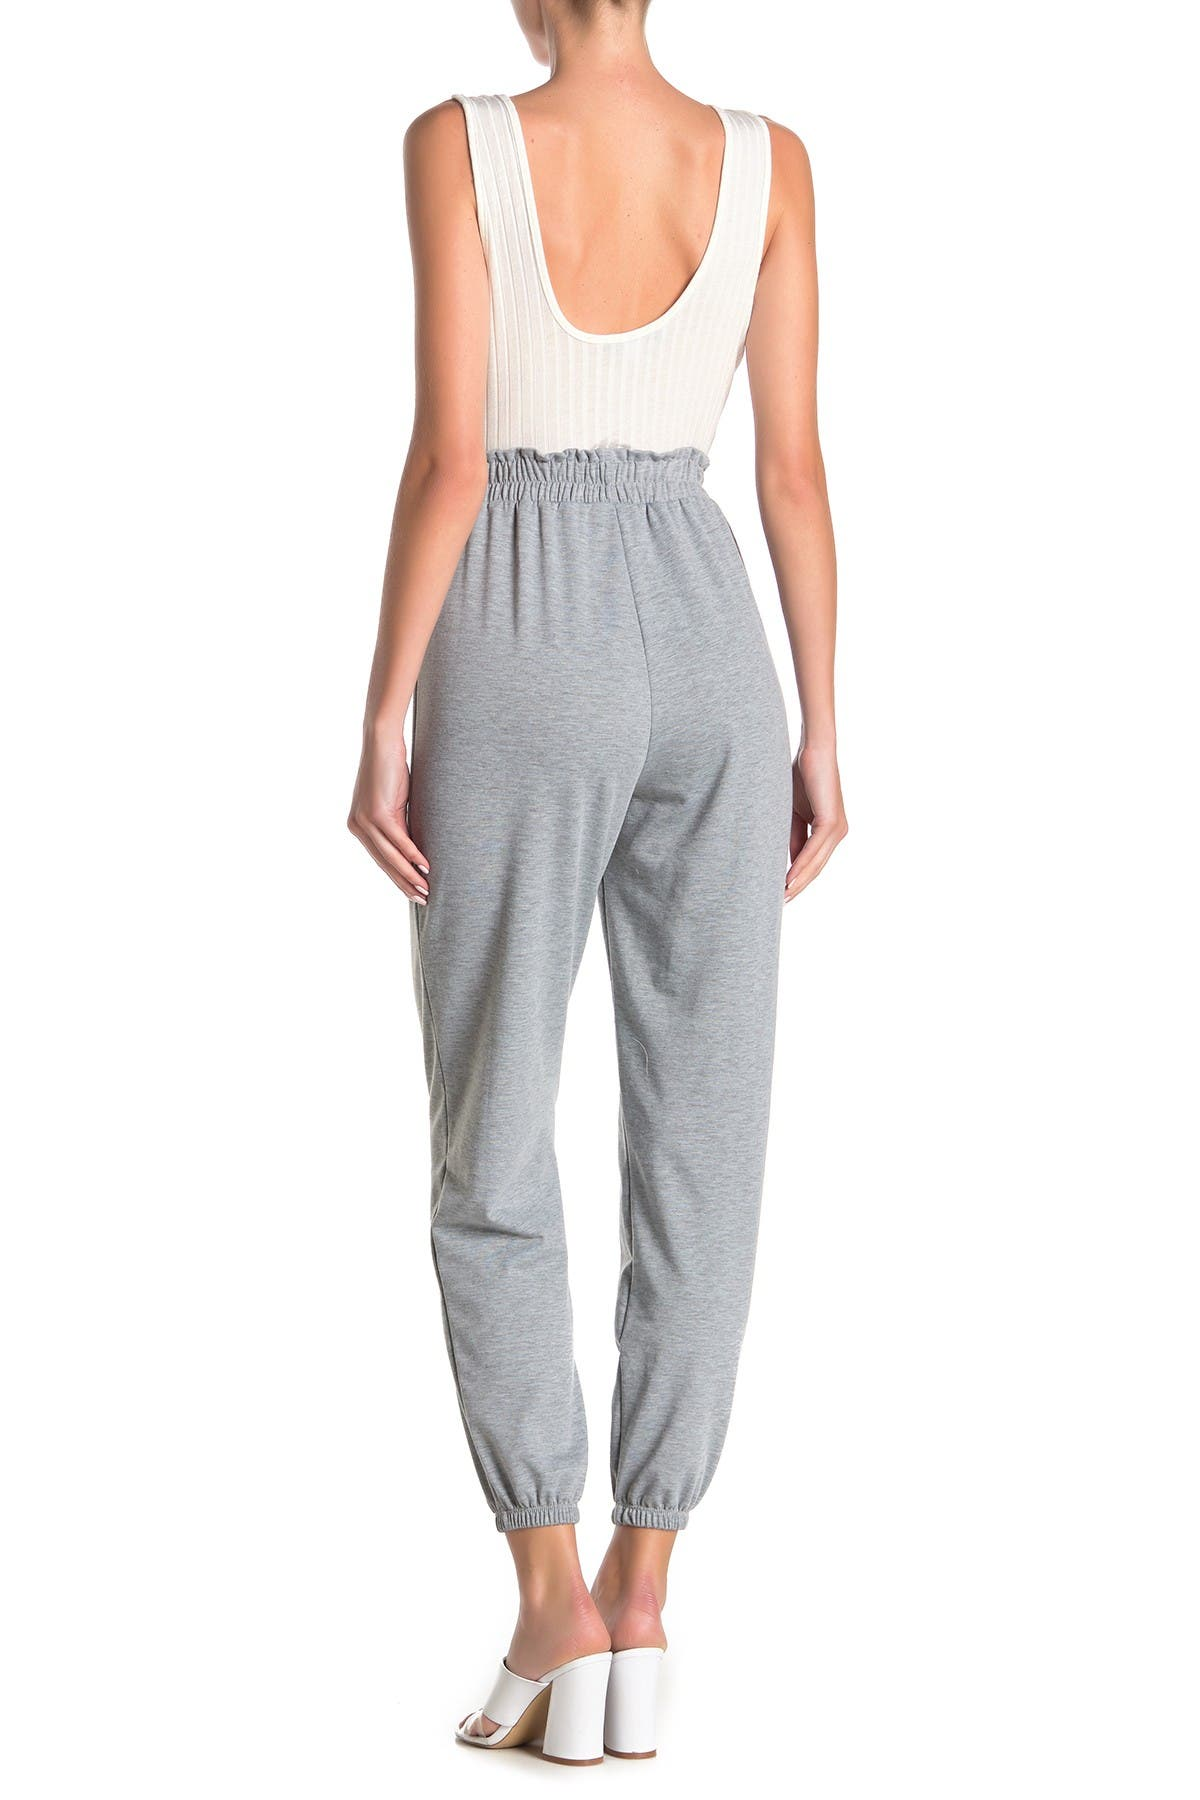 Image of Vanity Room Tank French Terry Combo Jumpsuit